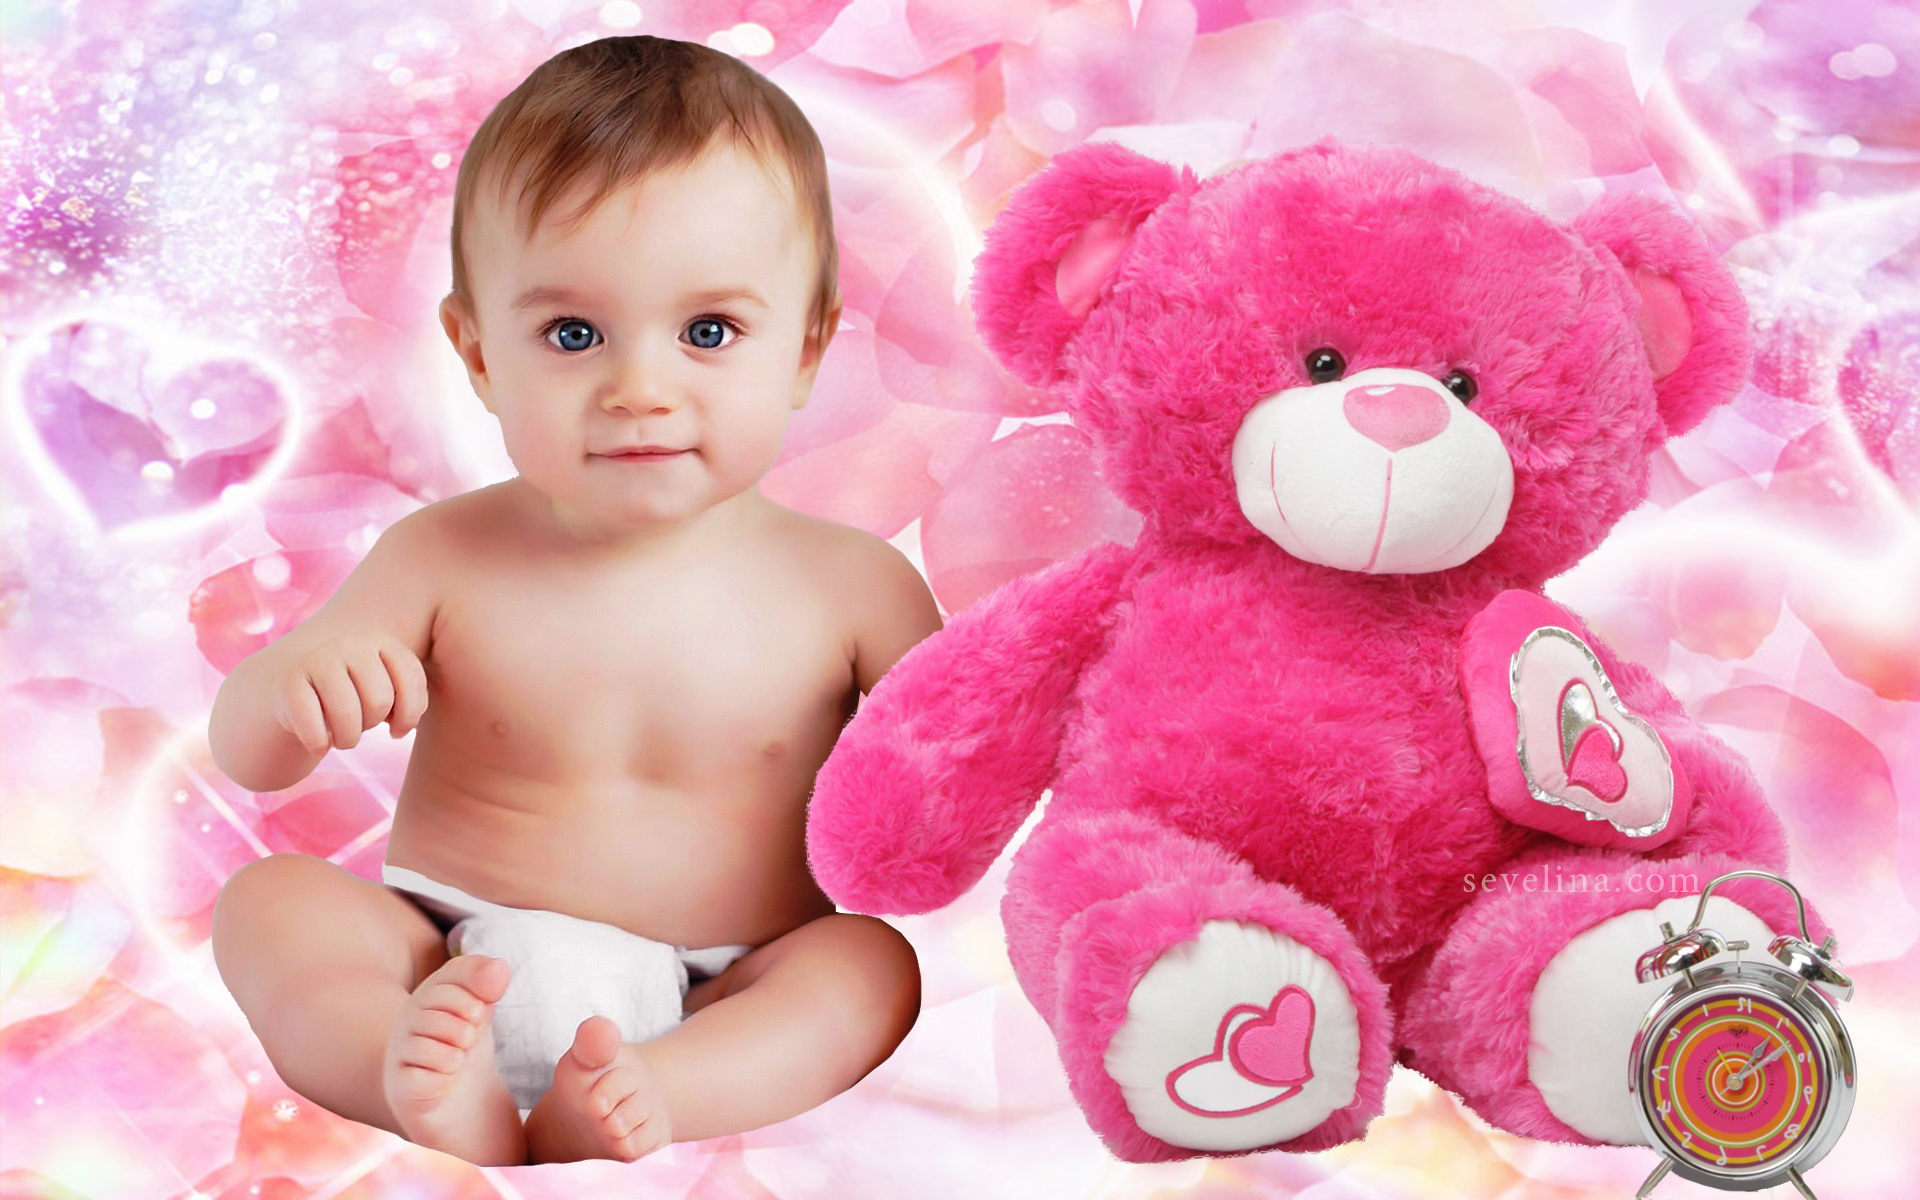 Love And Baby Wallpaper : Top 14 amazing Valentines day wallpaper 2014 Sevelina Games for girls